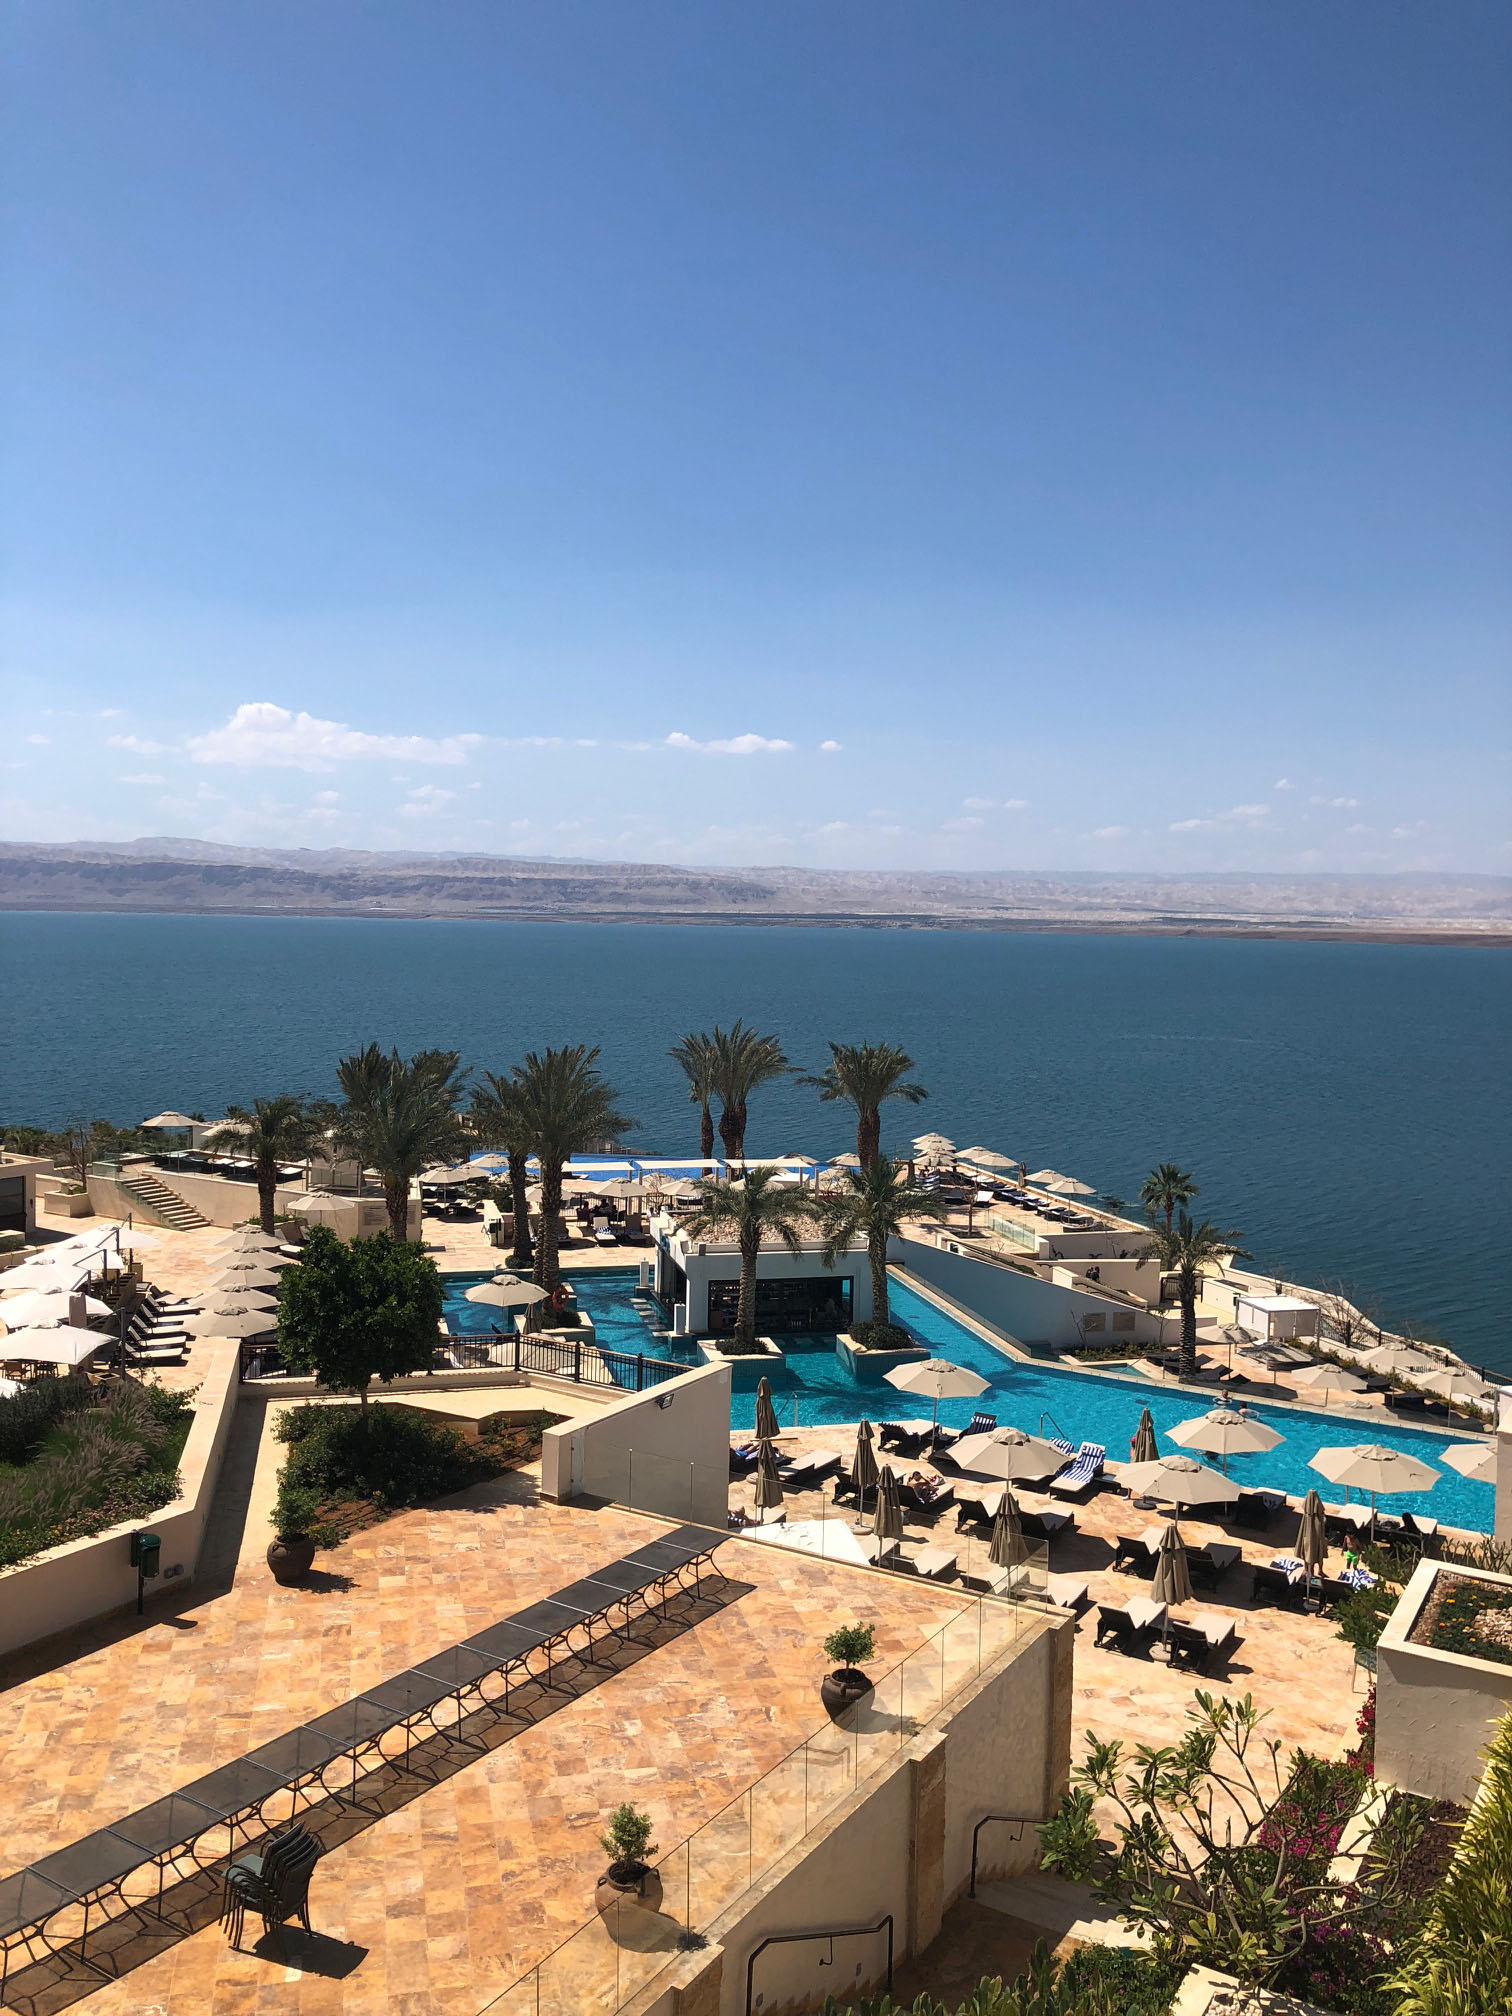 Our last Amideast excursion was to the Dead Sea, we stayed at the Hilton. It was amazing! Photo credit: Arguin, 2019